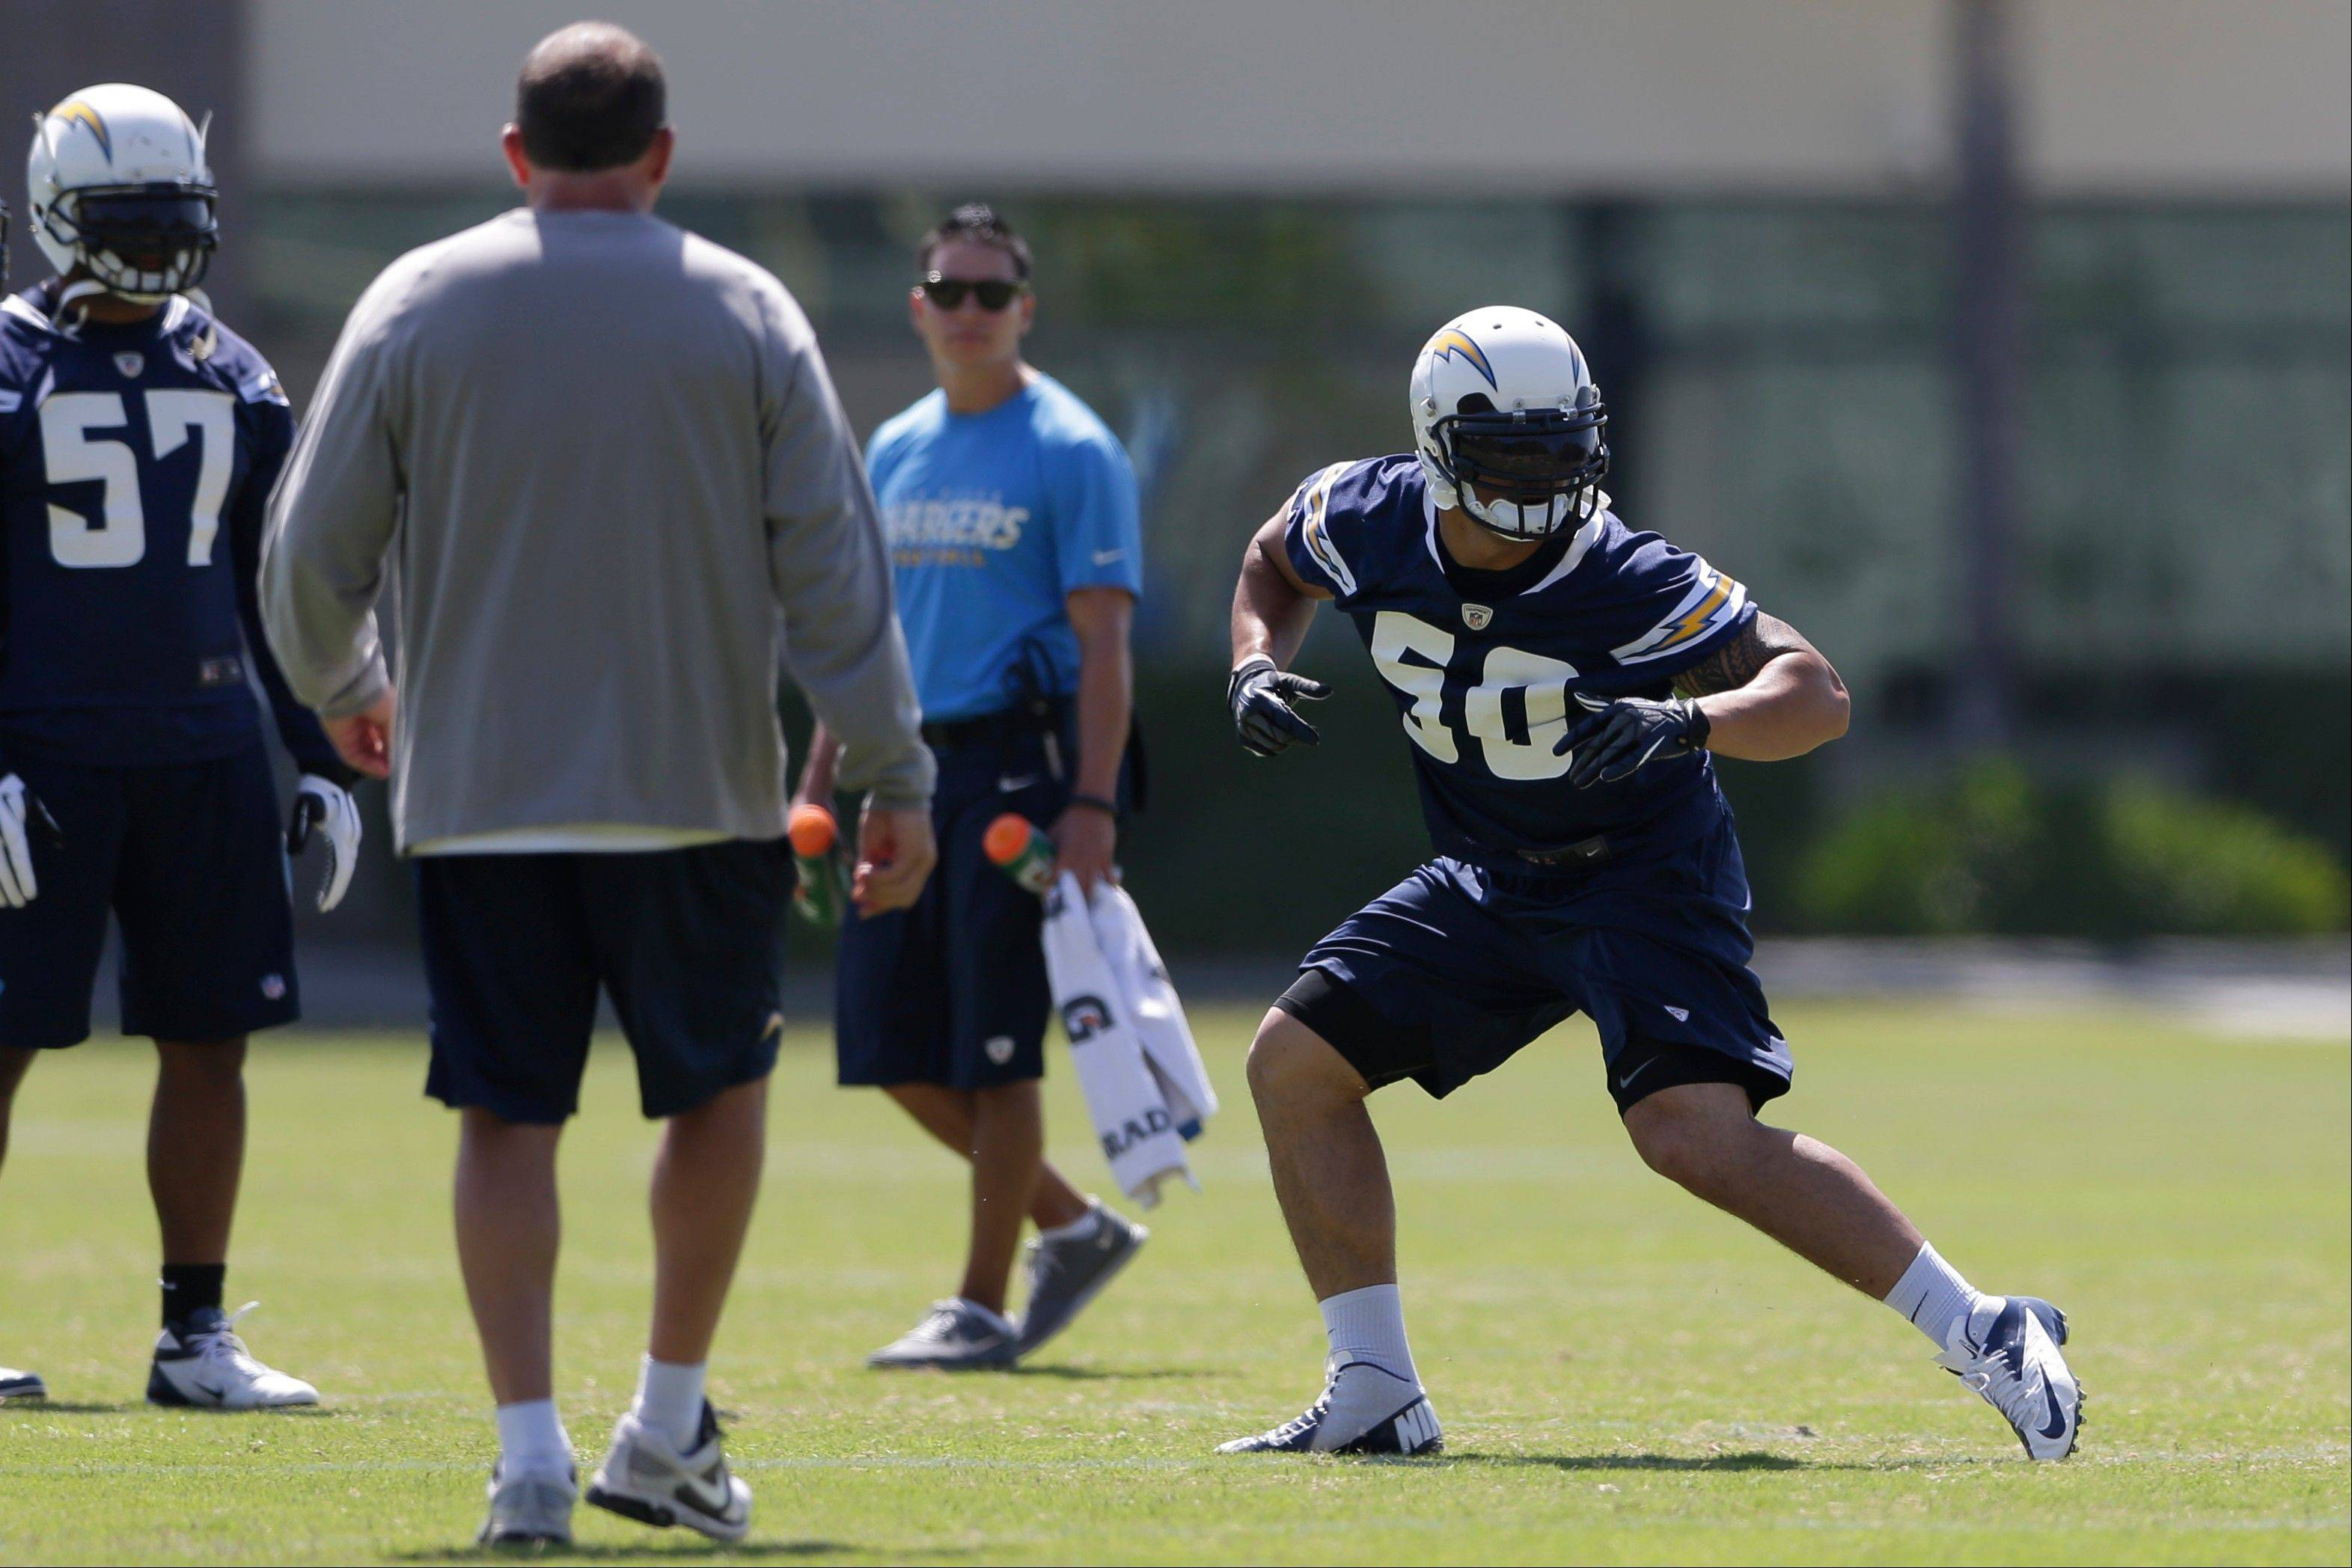 San Diego Chargers rookie linebacker Manti Te'o, right, runs a drill during Chargers training camp Monday, May 20, 2013, in San Diego.